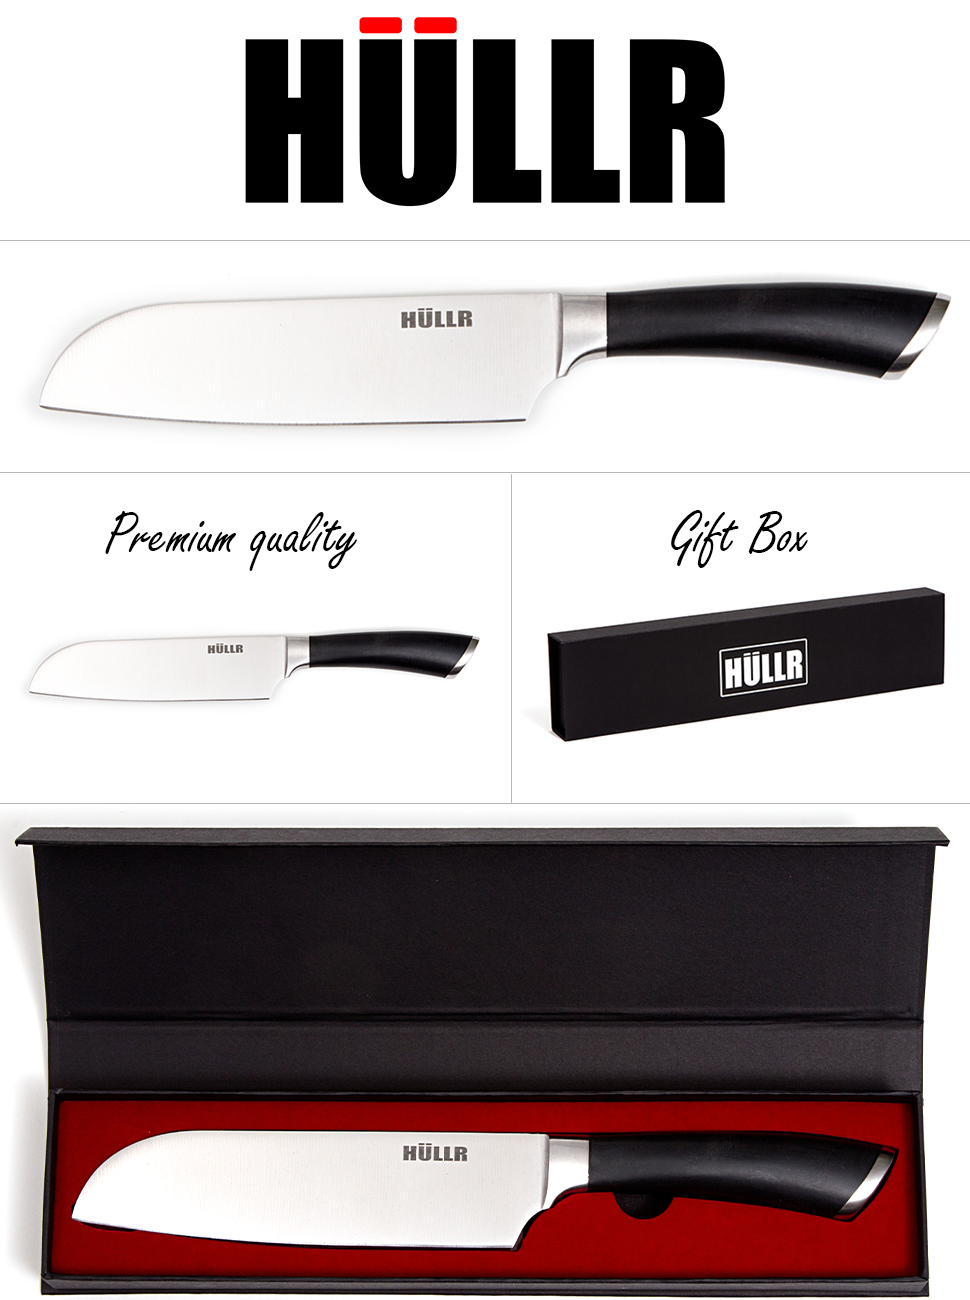 professional chef knife by h llr a multipurpose kitchen tool of german design in a. Black Bedroom Furniture Sets. Home Design Ideas